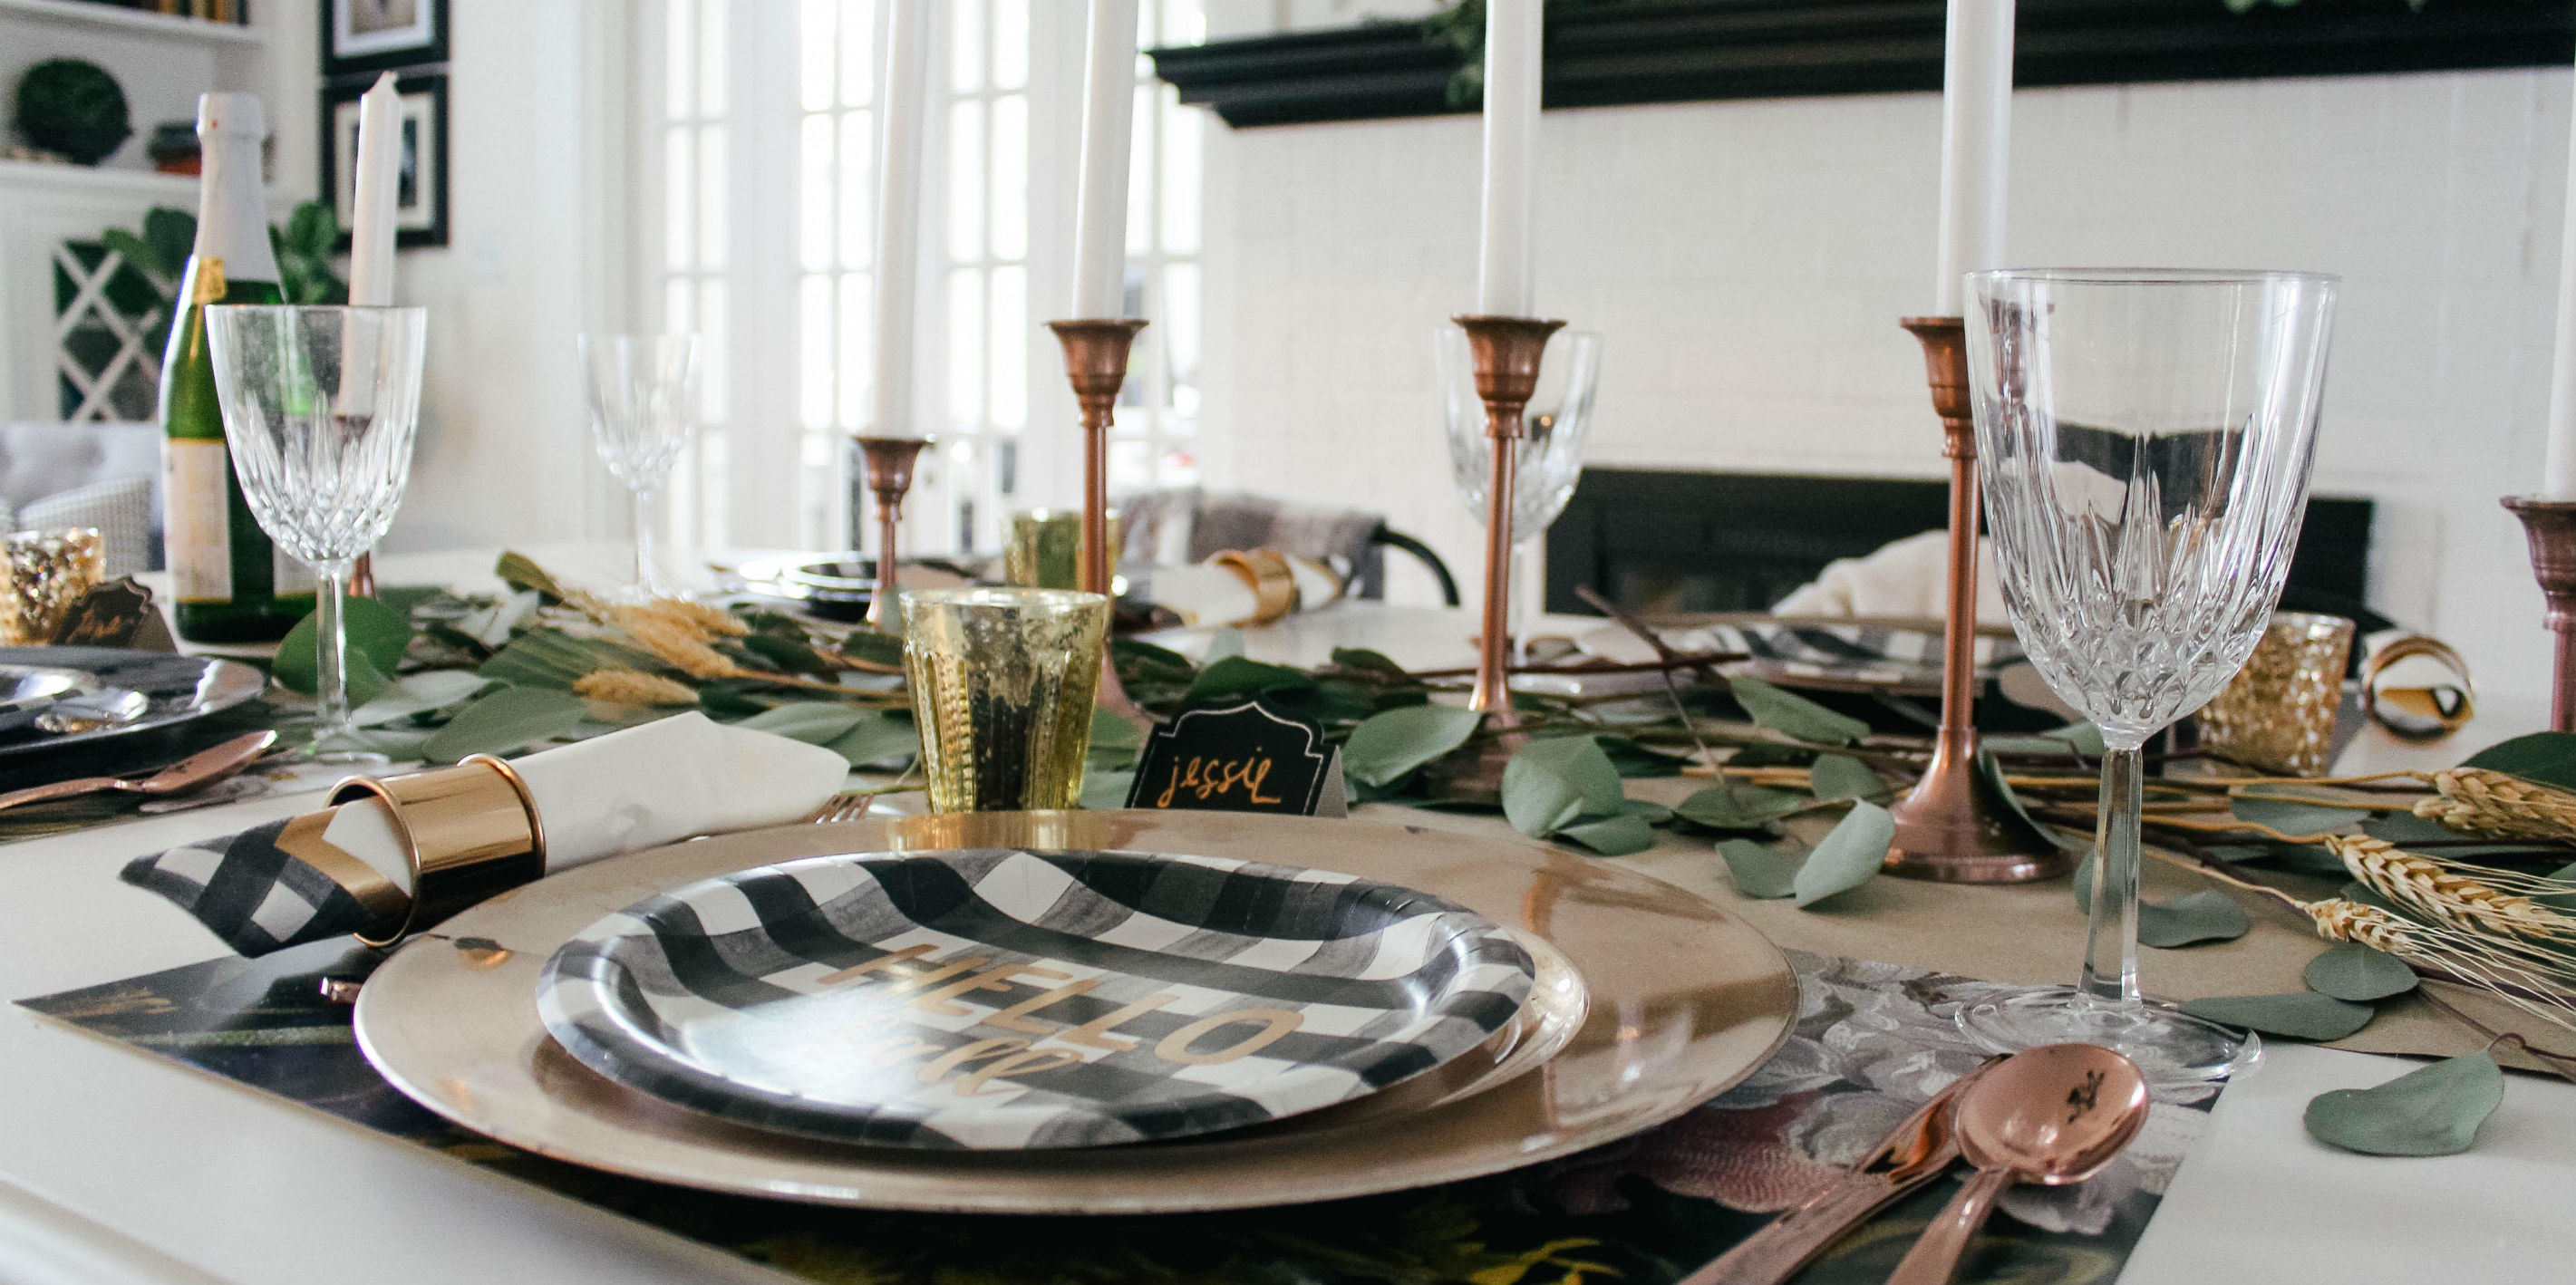 friendsgiving around the table how you live blog header accent your focus runner corner console white folding side bookcase kmart door floor trim jcpenney shades inch furniture